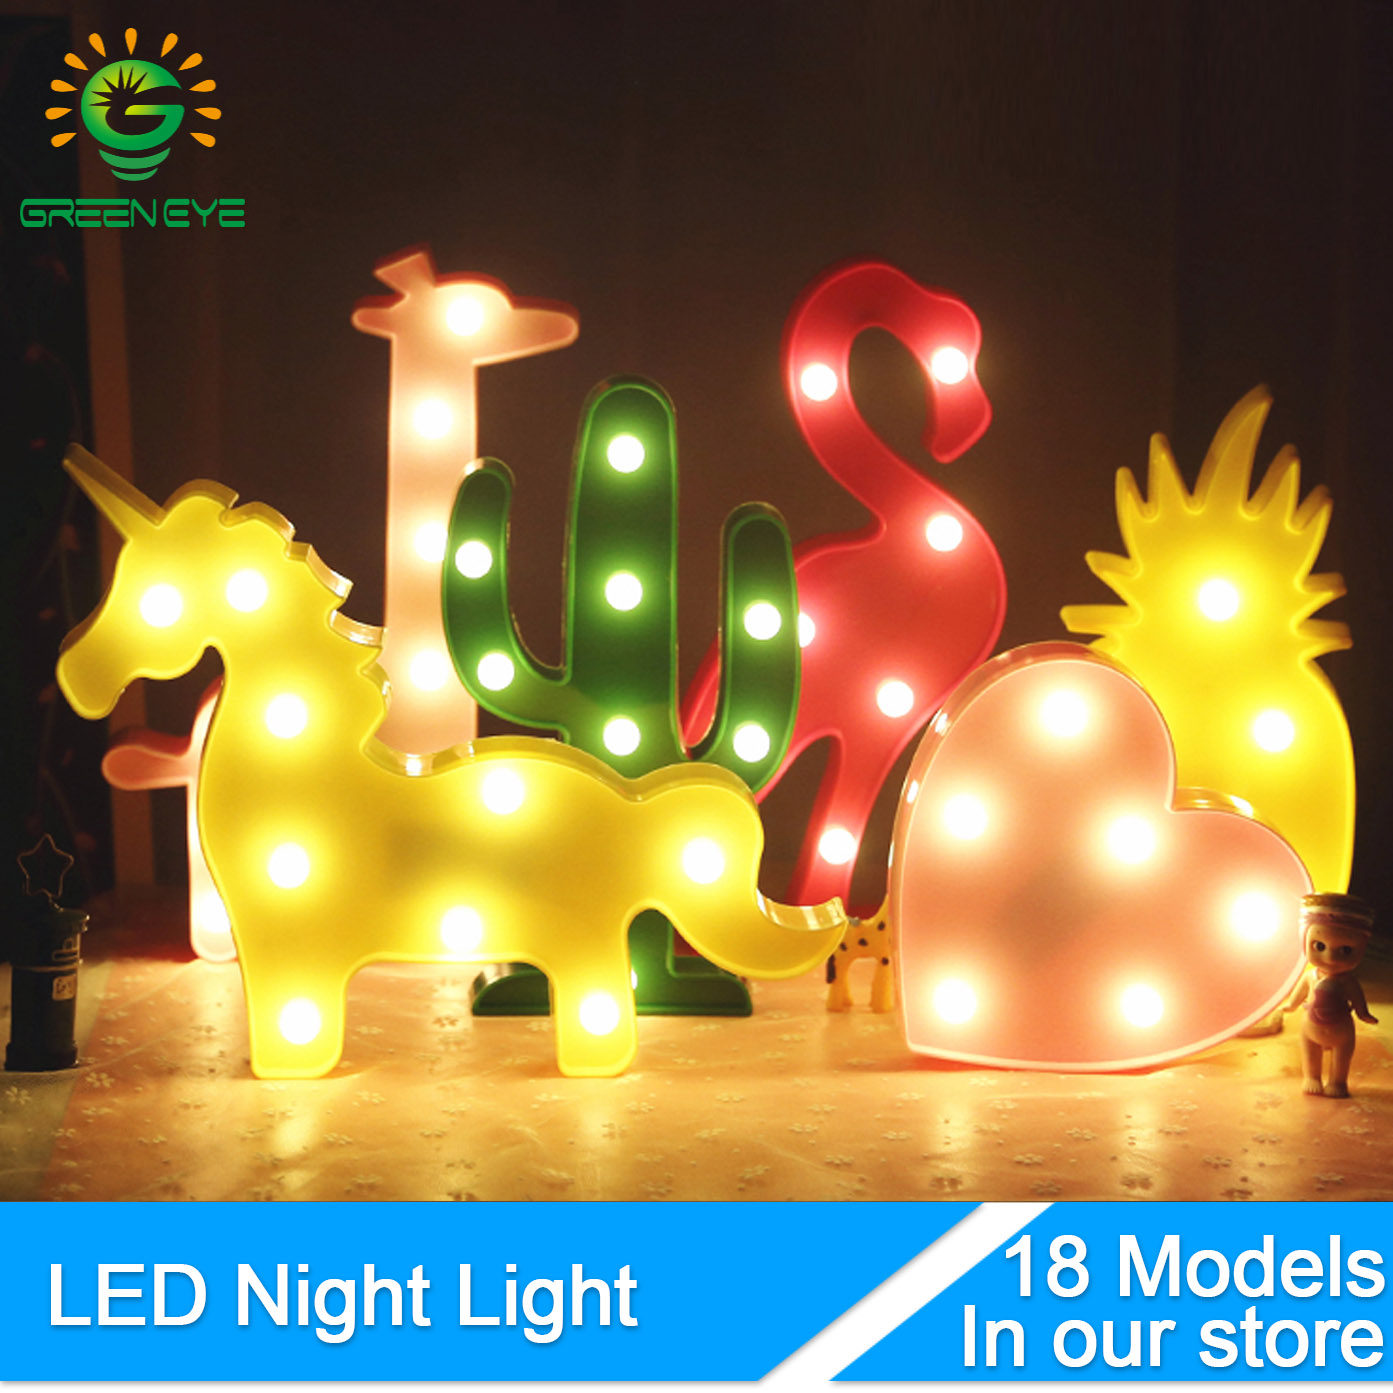 GreenEye LED Nightlight 3D Bulb Desk Table Wall Lamp Night Light Bulb For Baby Children Toy Party Bar Luminaria Ampoule Lampara yimia creative 4 colors remote control led night lights hourglass night light wall lamp chandelier lights children baby s gifts